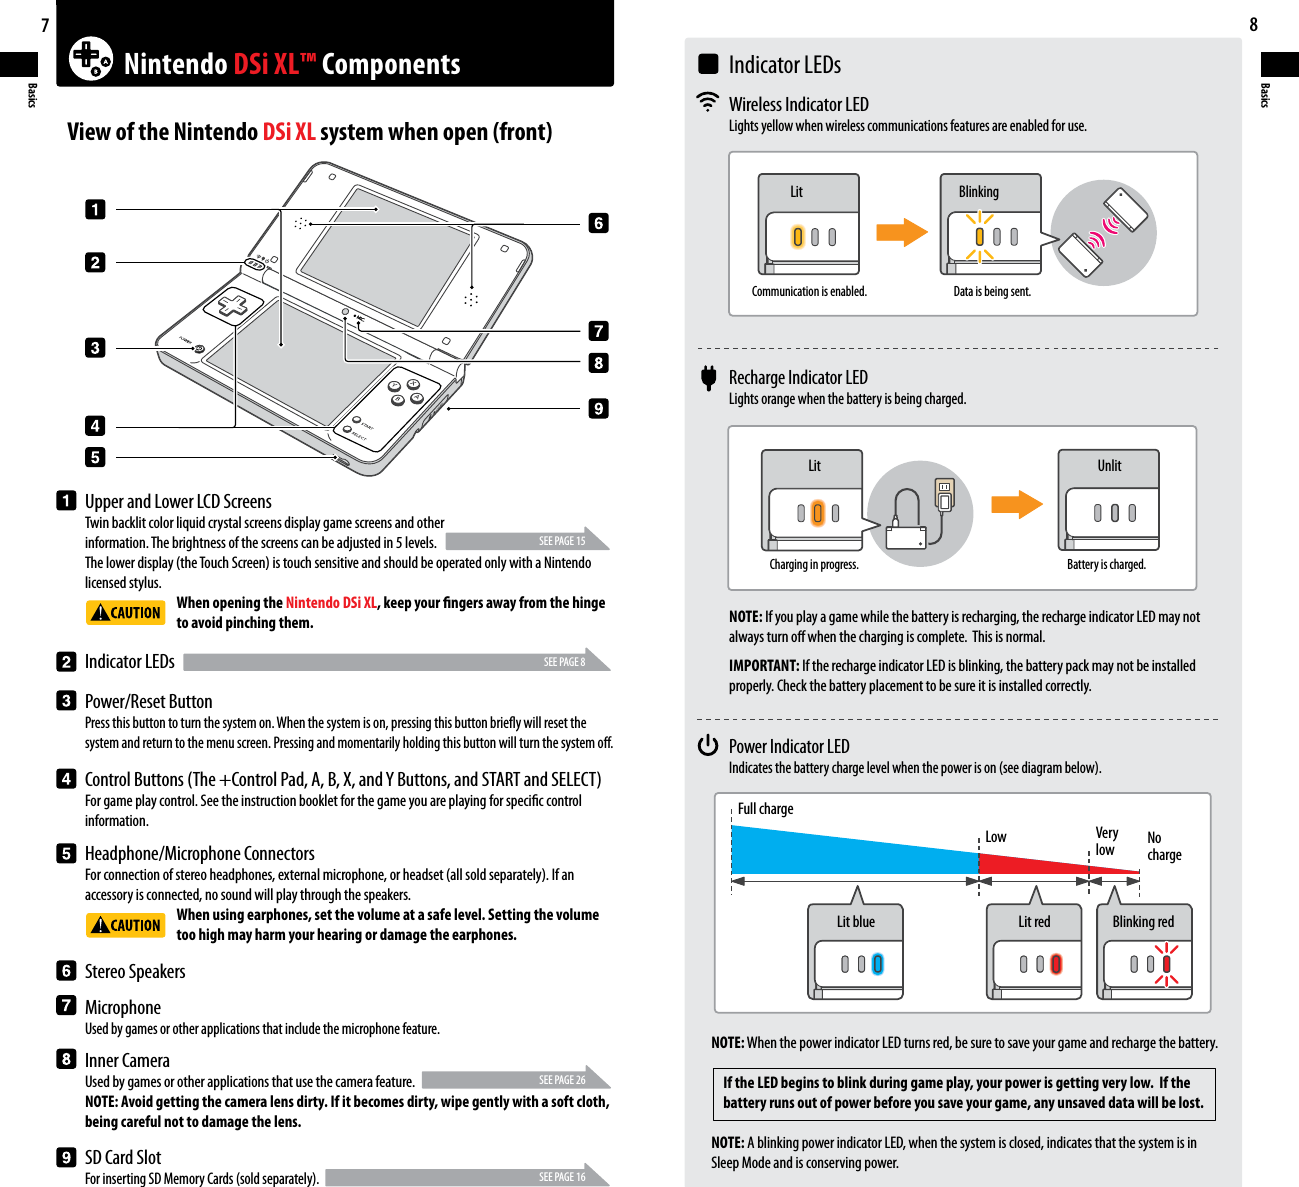 mitsumi electric co dwmw024 wireless lan module user manual 1 of 3 rh usermanual wiki nintendo ds 3d xl manual manual de nintendo dsi xl en español